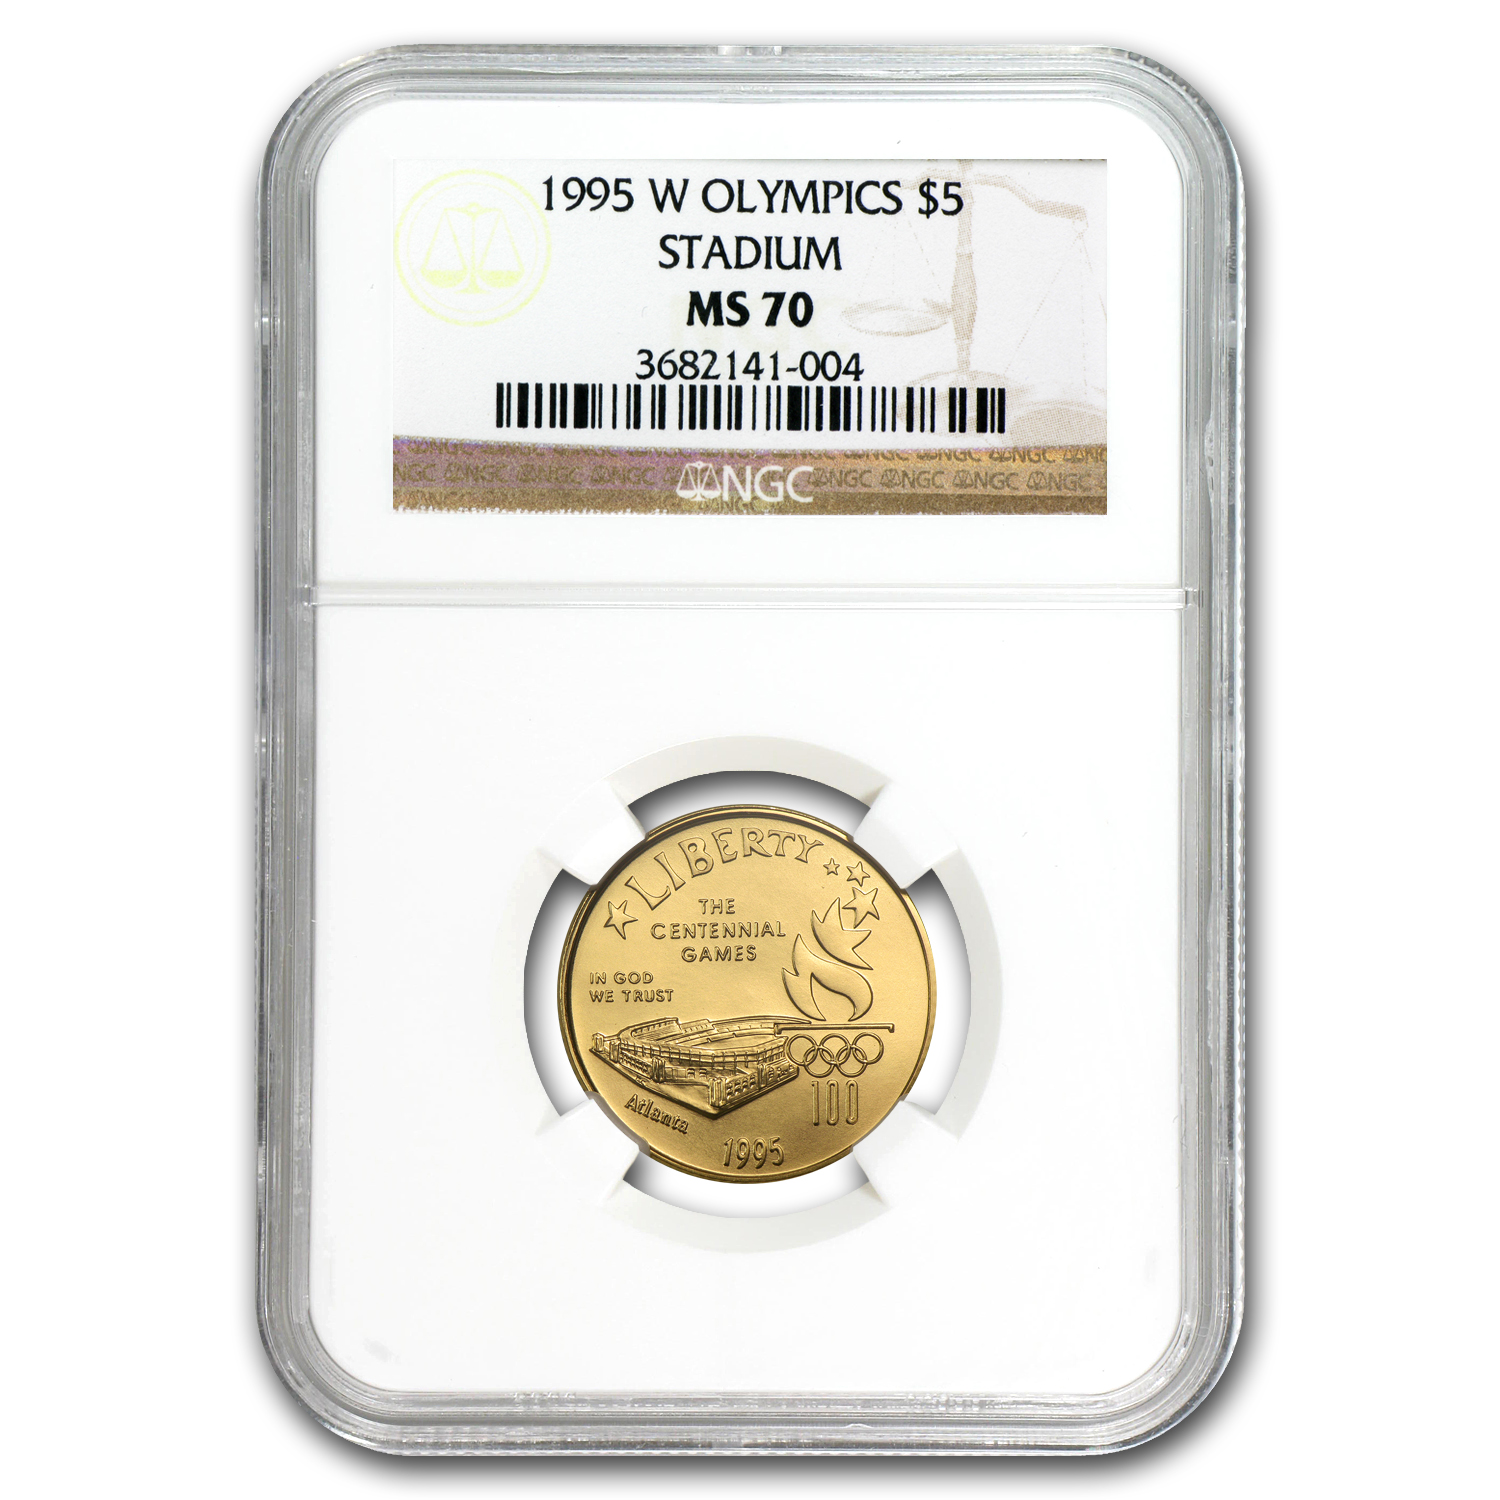 1995-W Gold $5 Commem Olympic Stadium MS-70 NGC